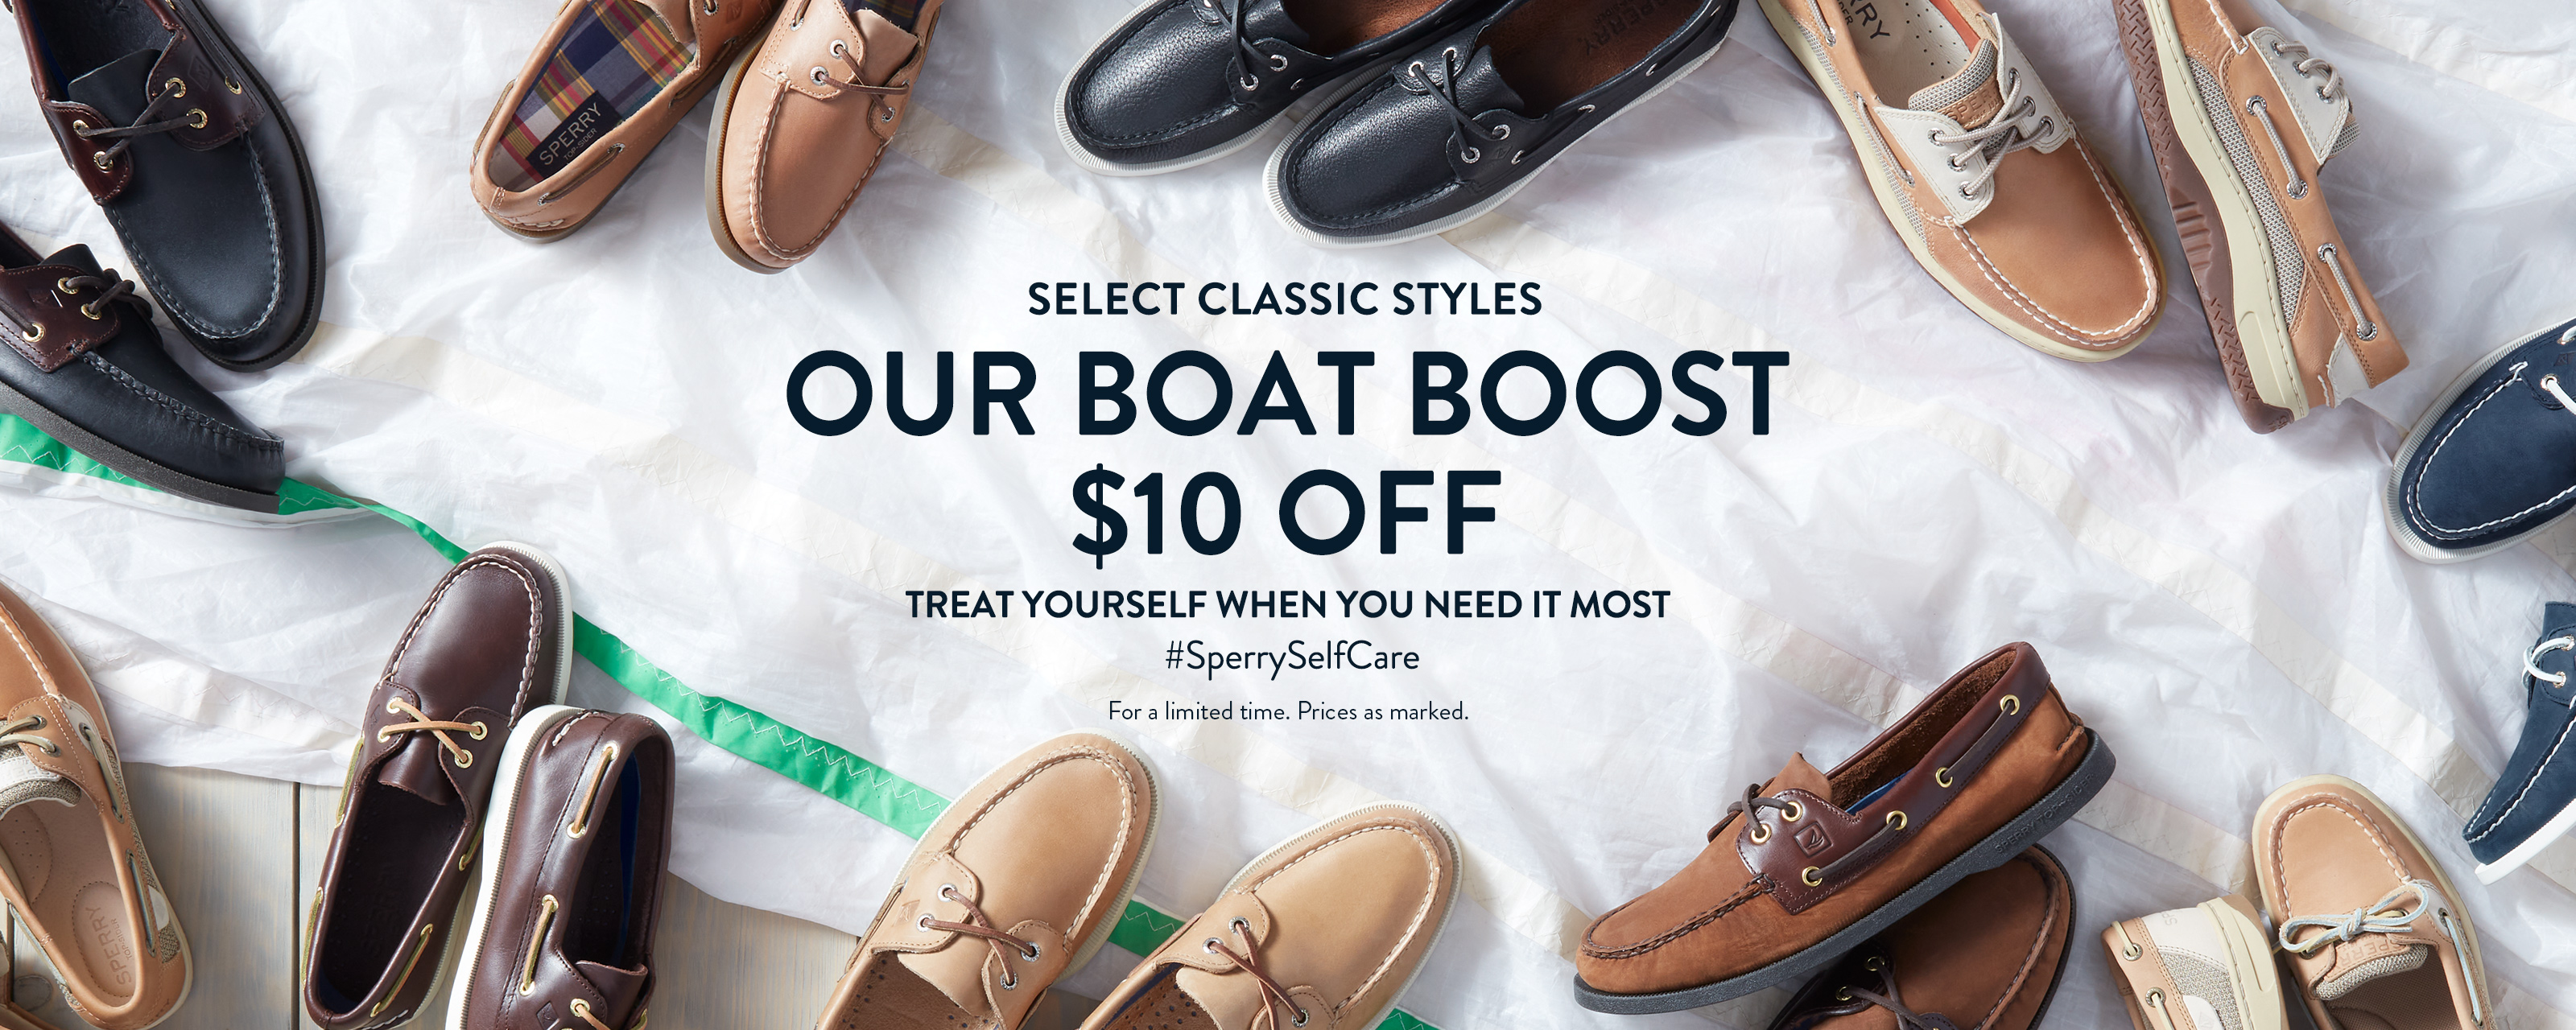 Select classic styles. Our boat boost. $10 off. Treat yourself when you need it most #sperryselfcare. For a limited time. Prices as marked.